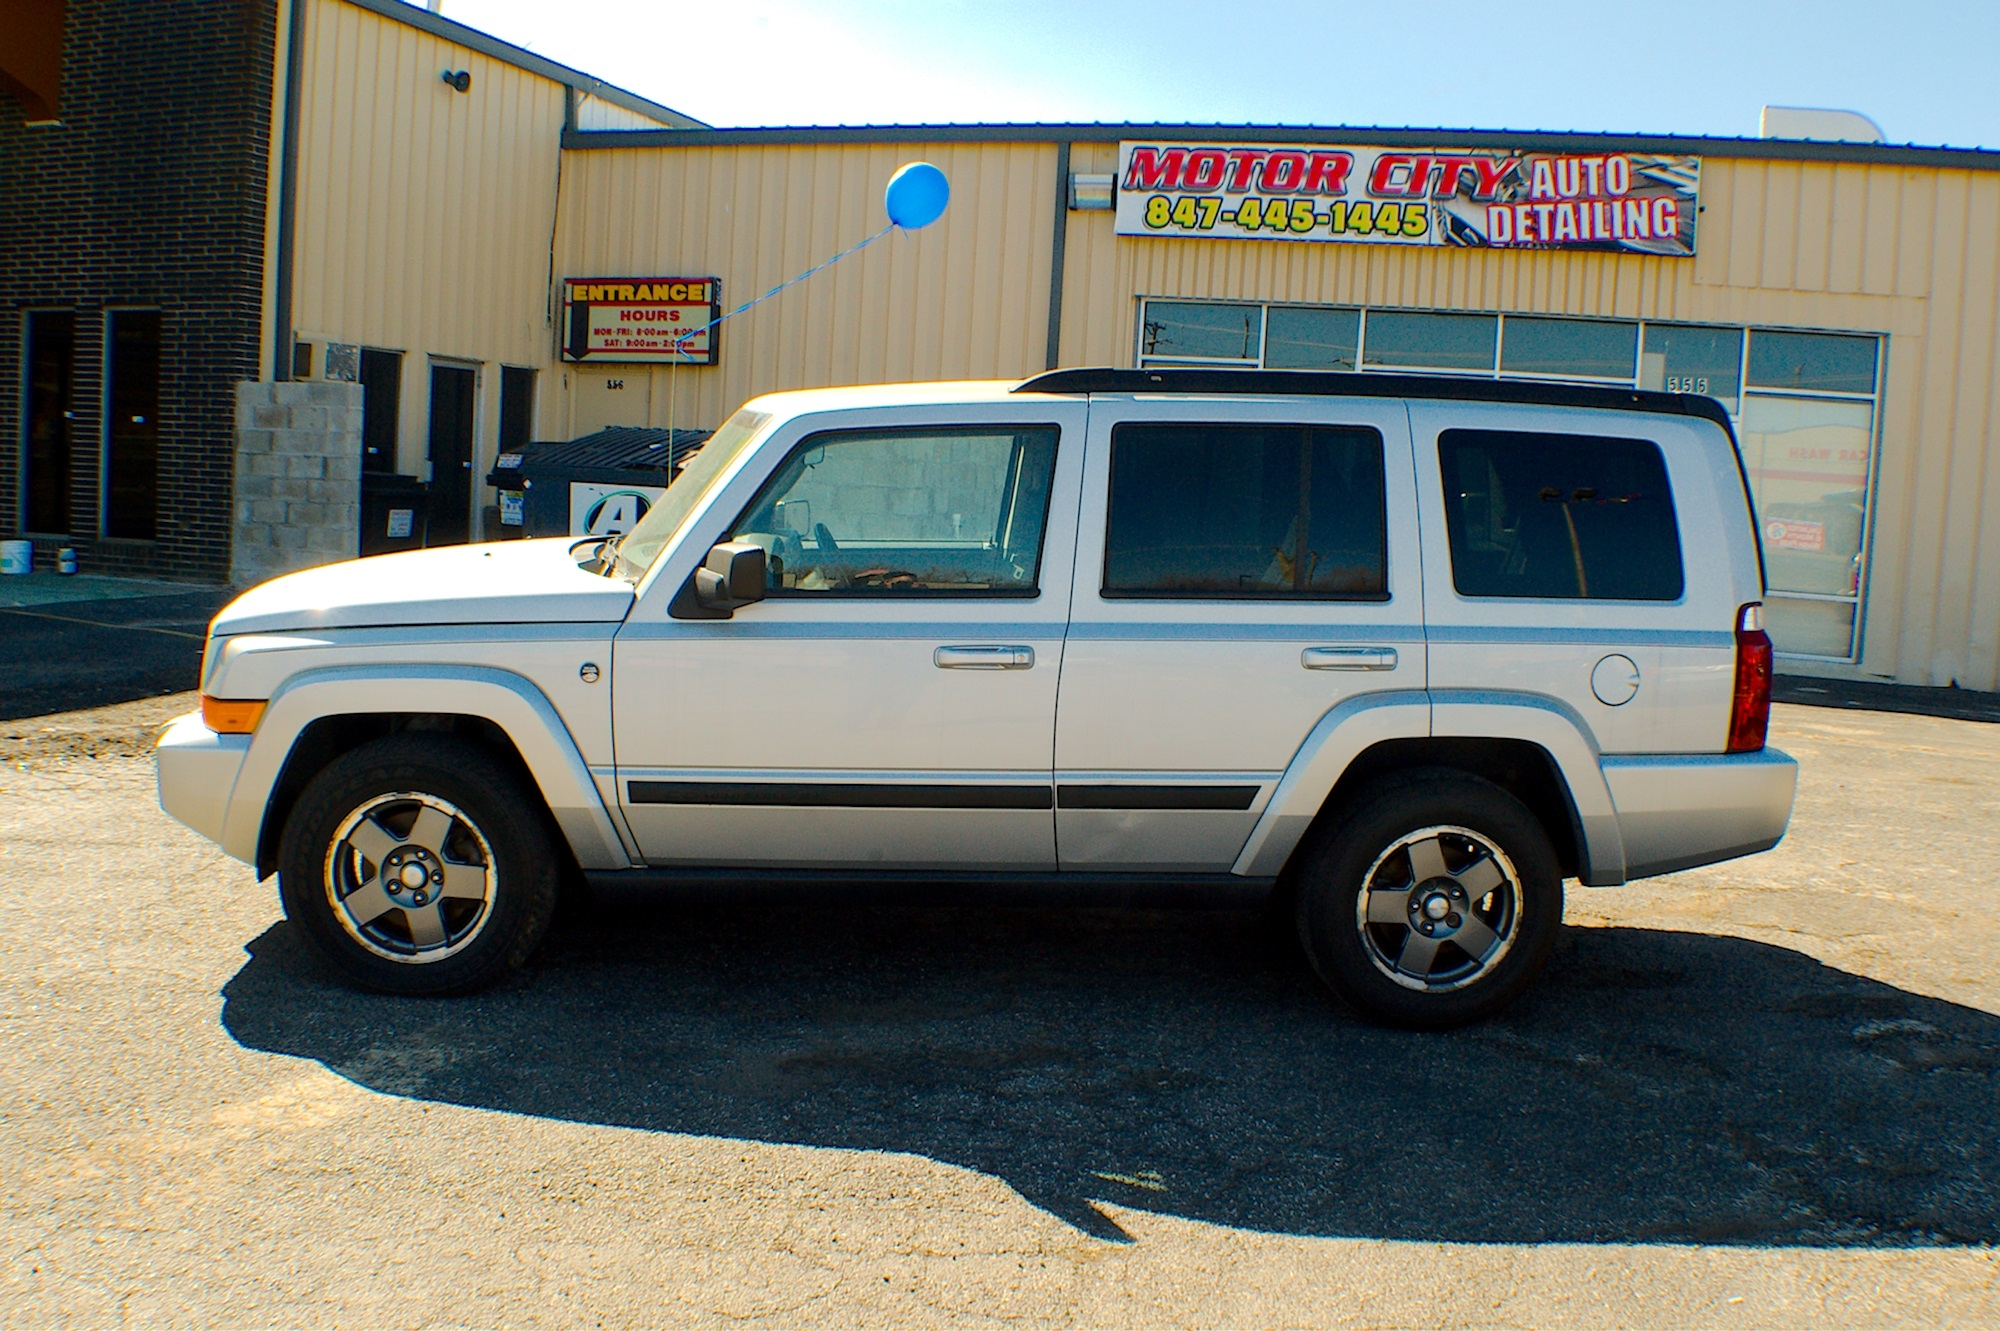 2007 Jeep Commander 4x4 Silver Flex fuel SUV Sale Bannockburn Barrington Beach Park